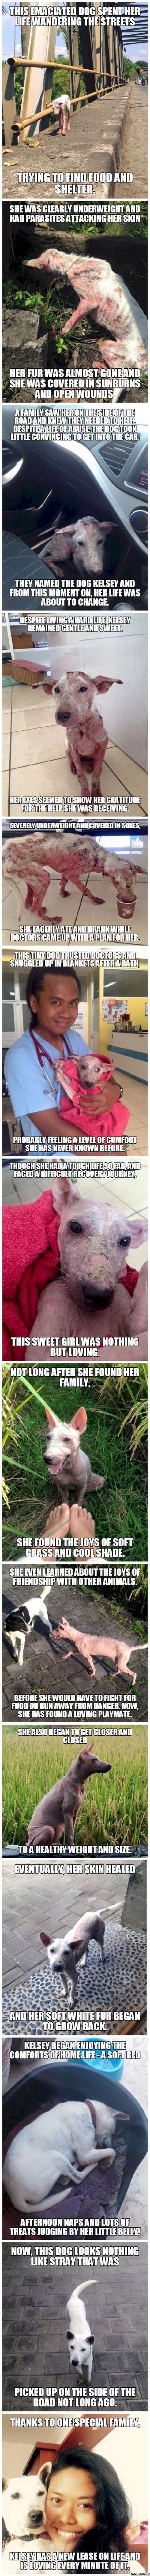 The story of Kelsey the stray and emaciated dog